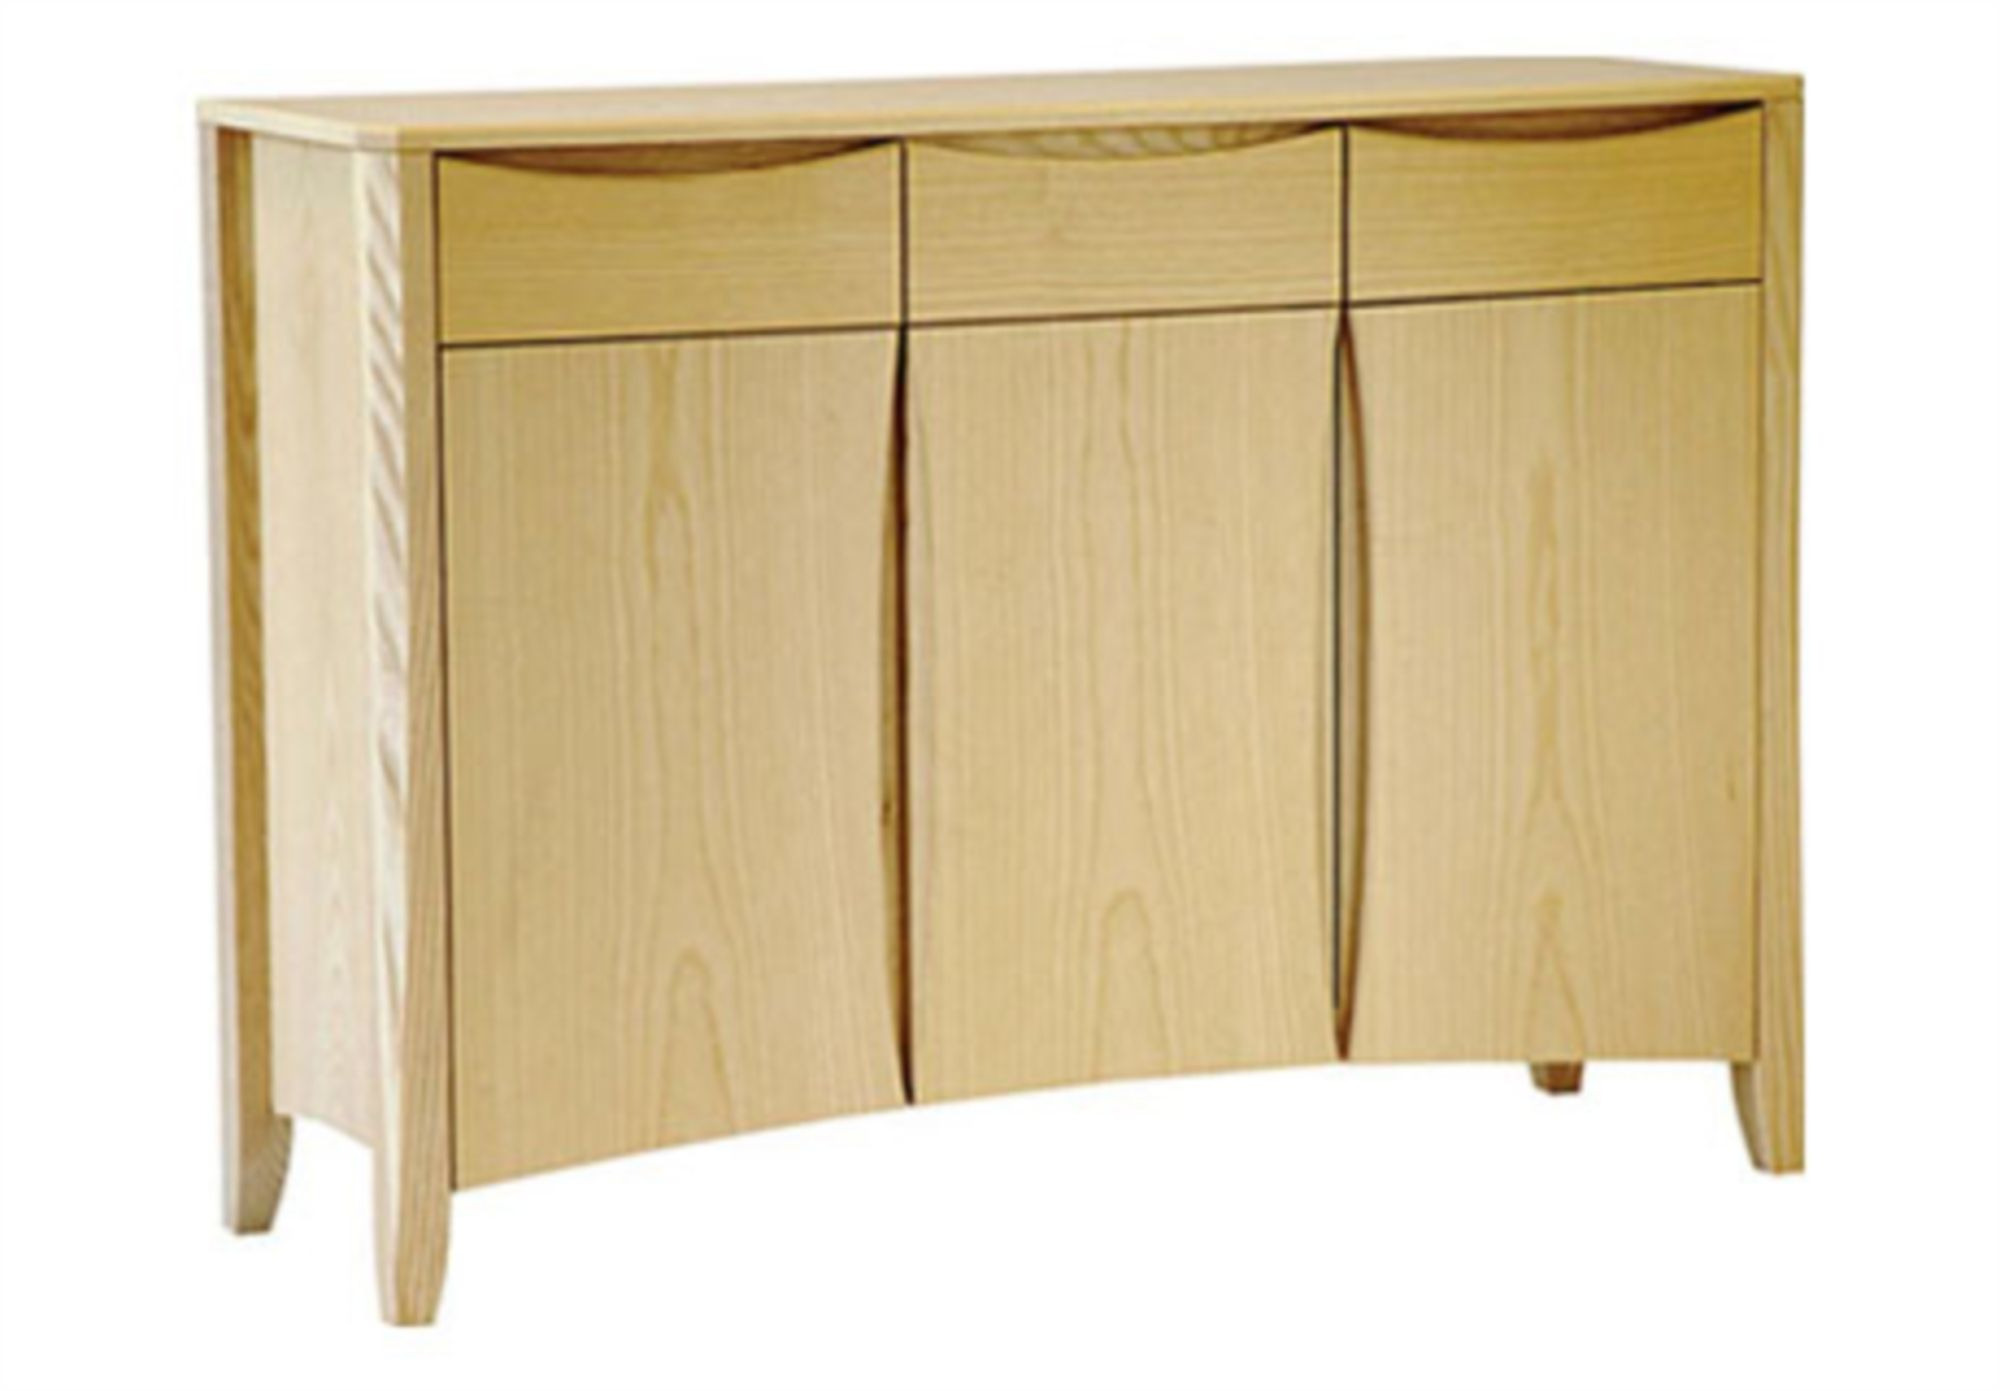 Furniture Village Aylesbury ercol artisan 3 door sideboard at furniture village - ercol